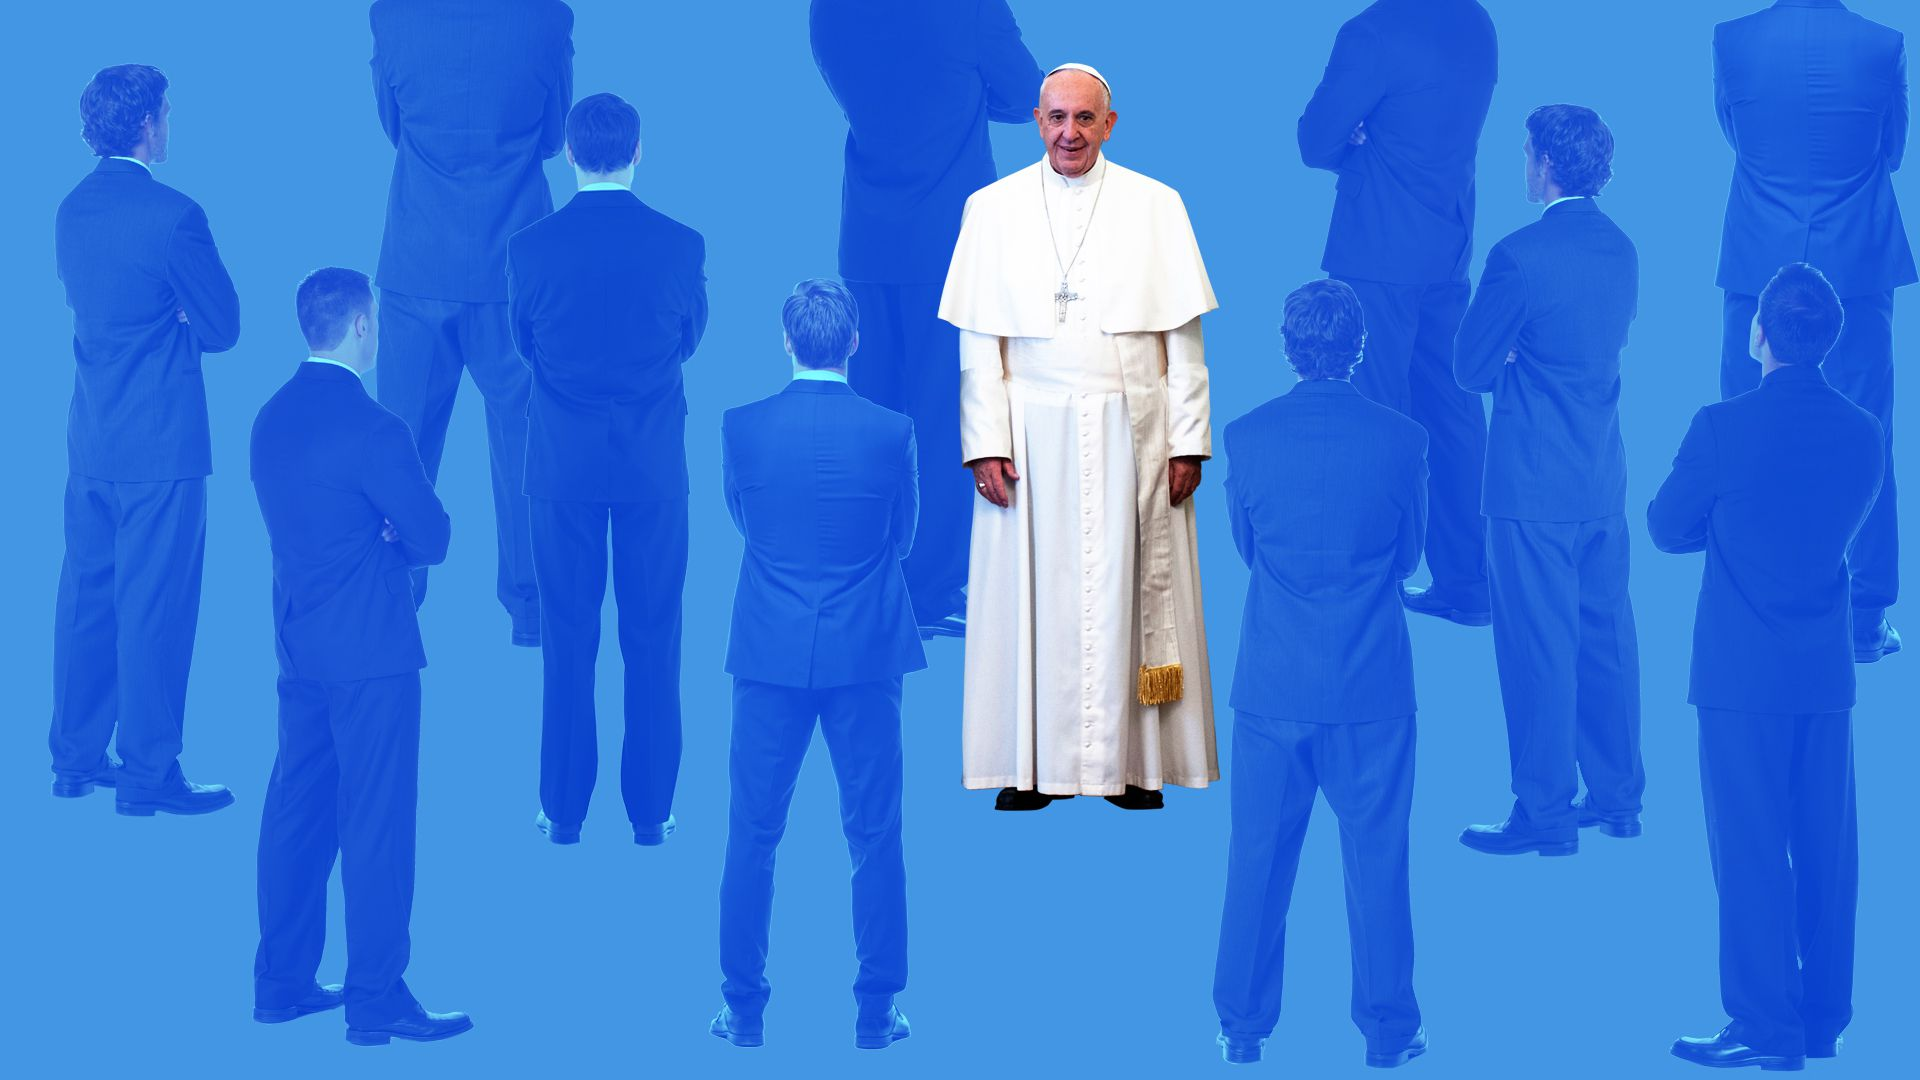 Pope Francis with the backs of men in suits.